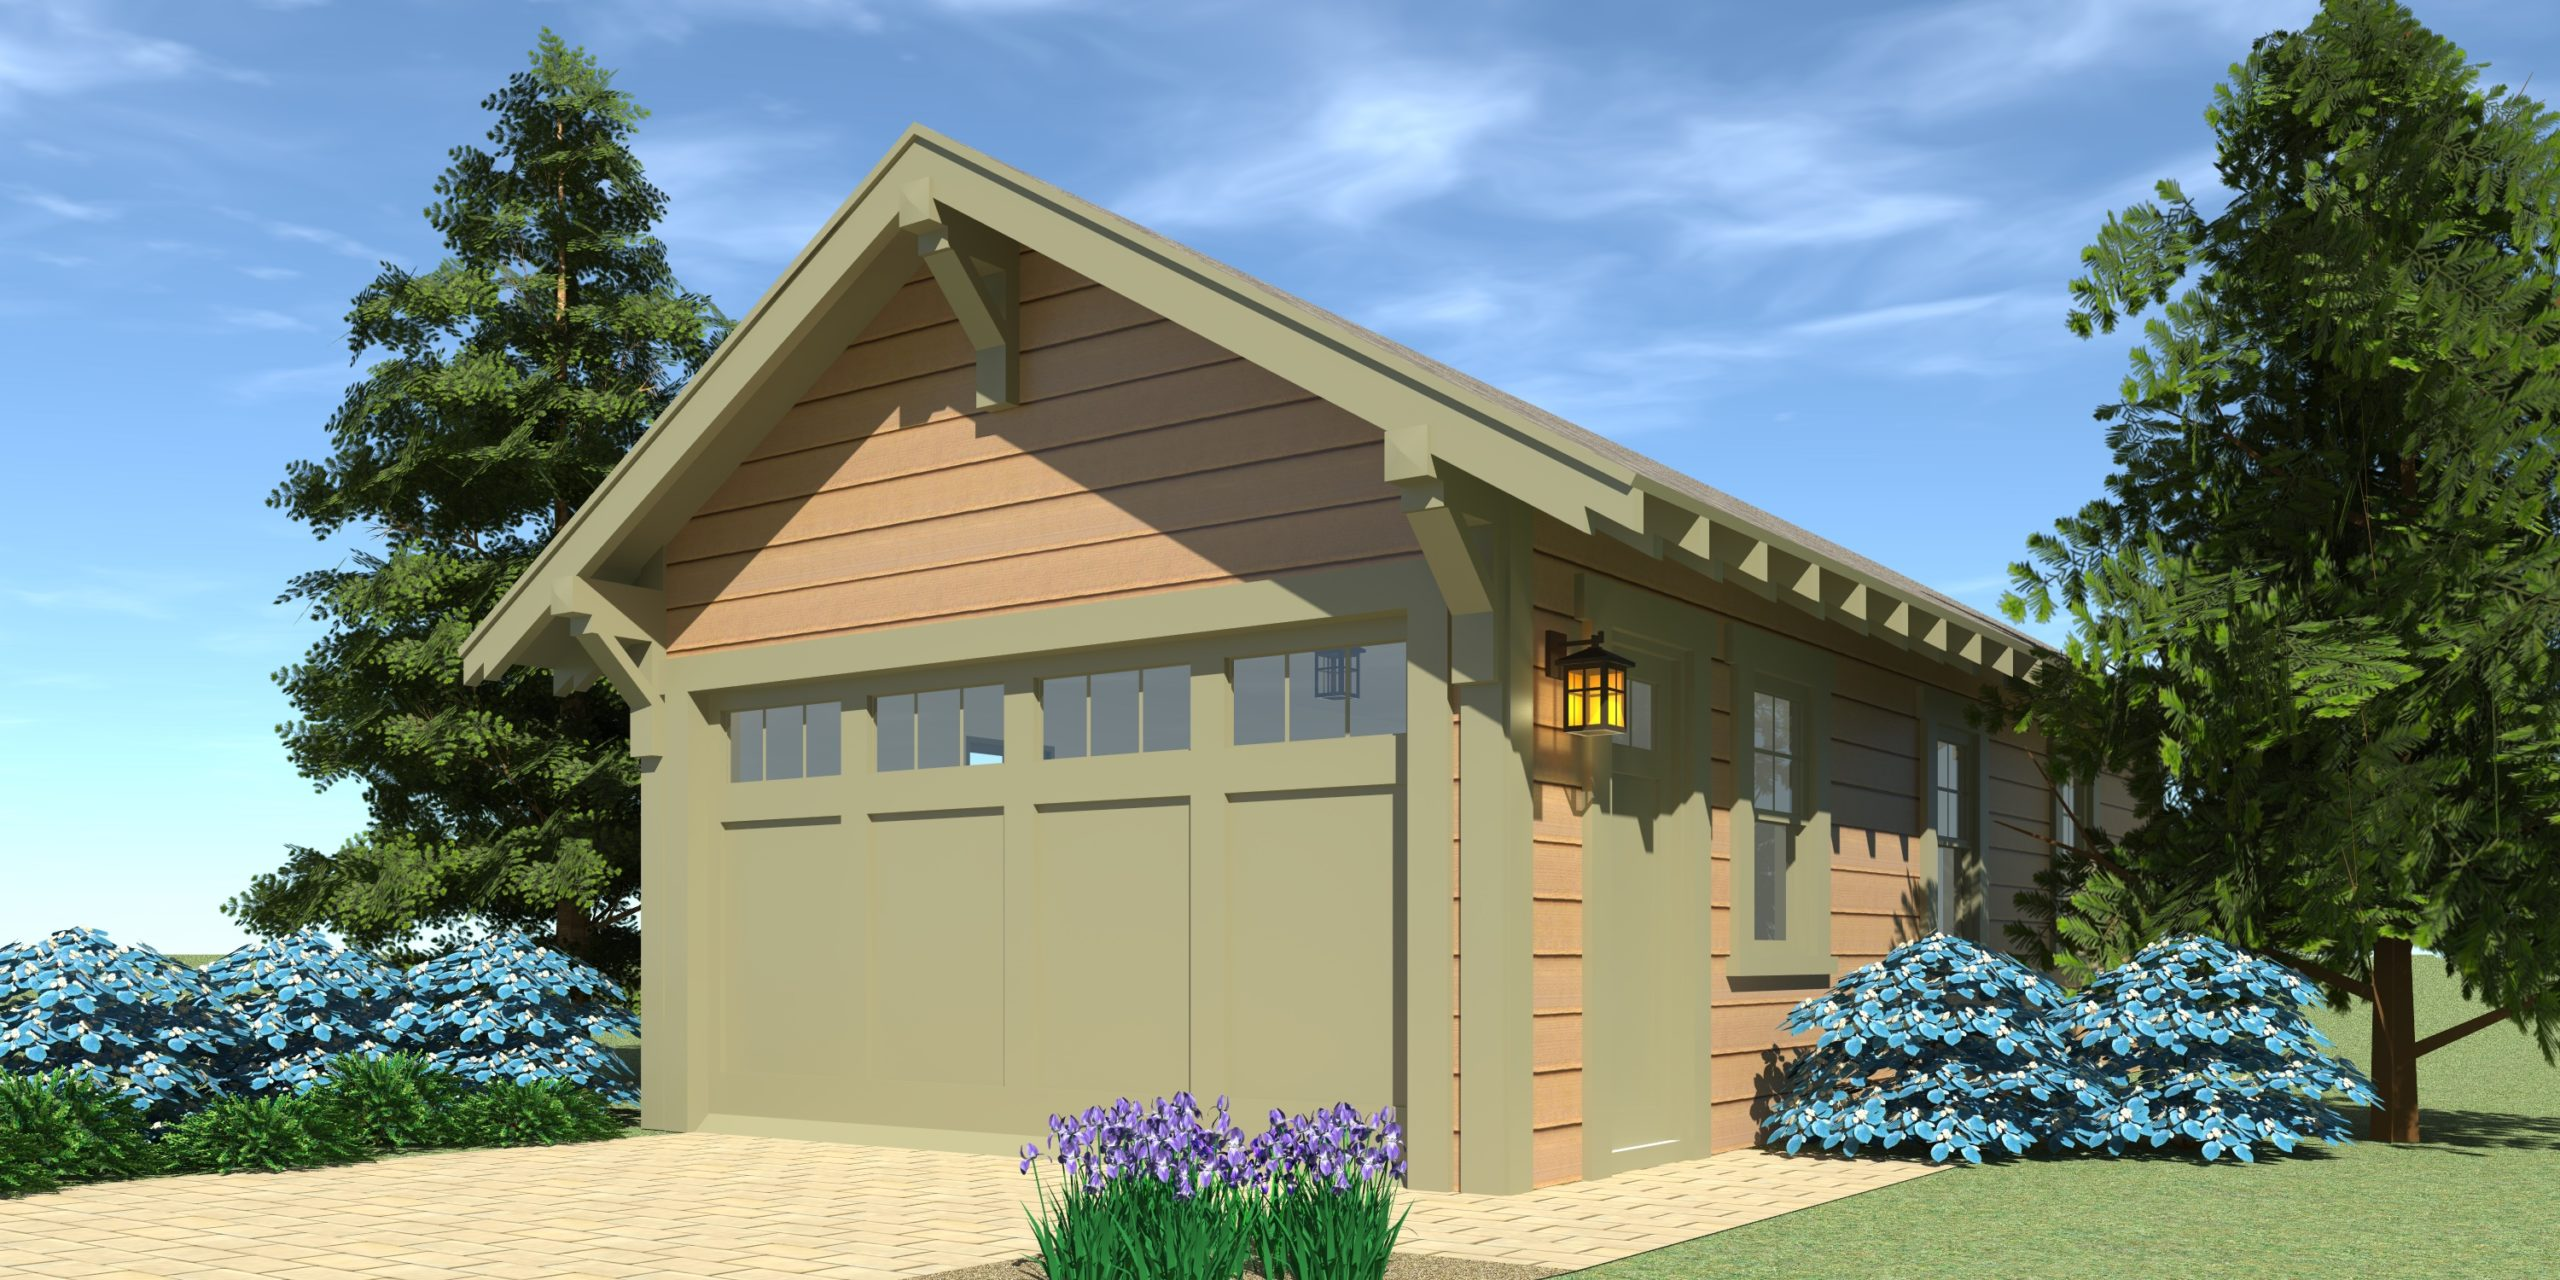 Craftsman Garage Plan 2 - Tyree House Plans